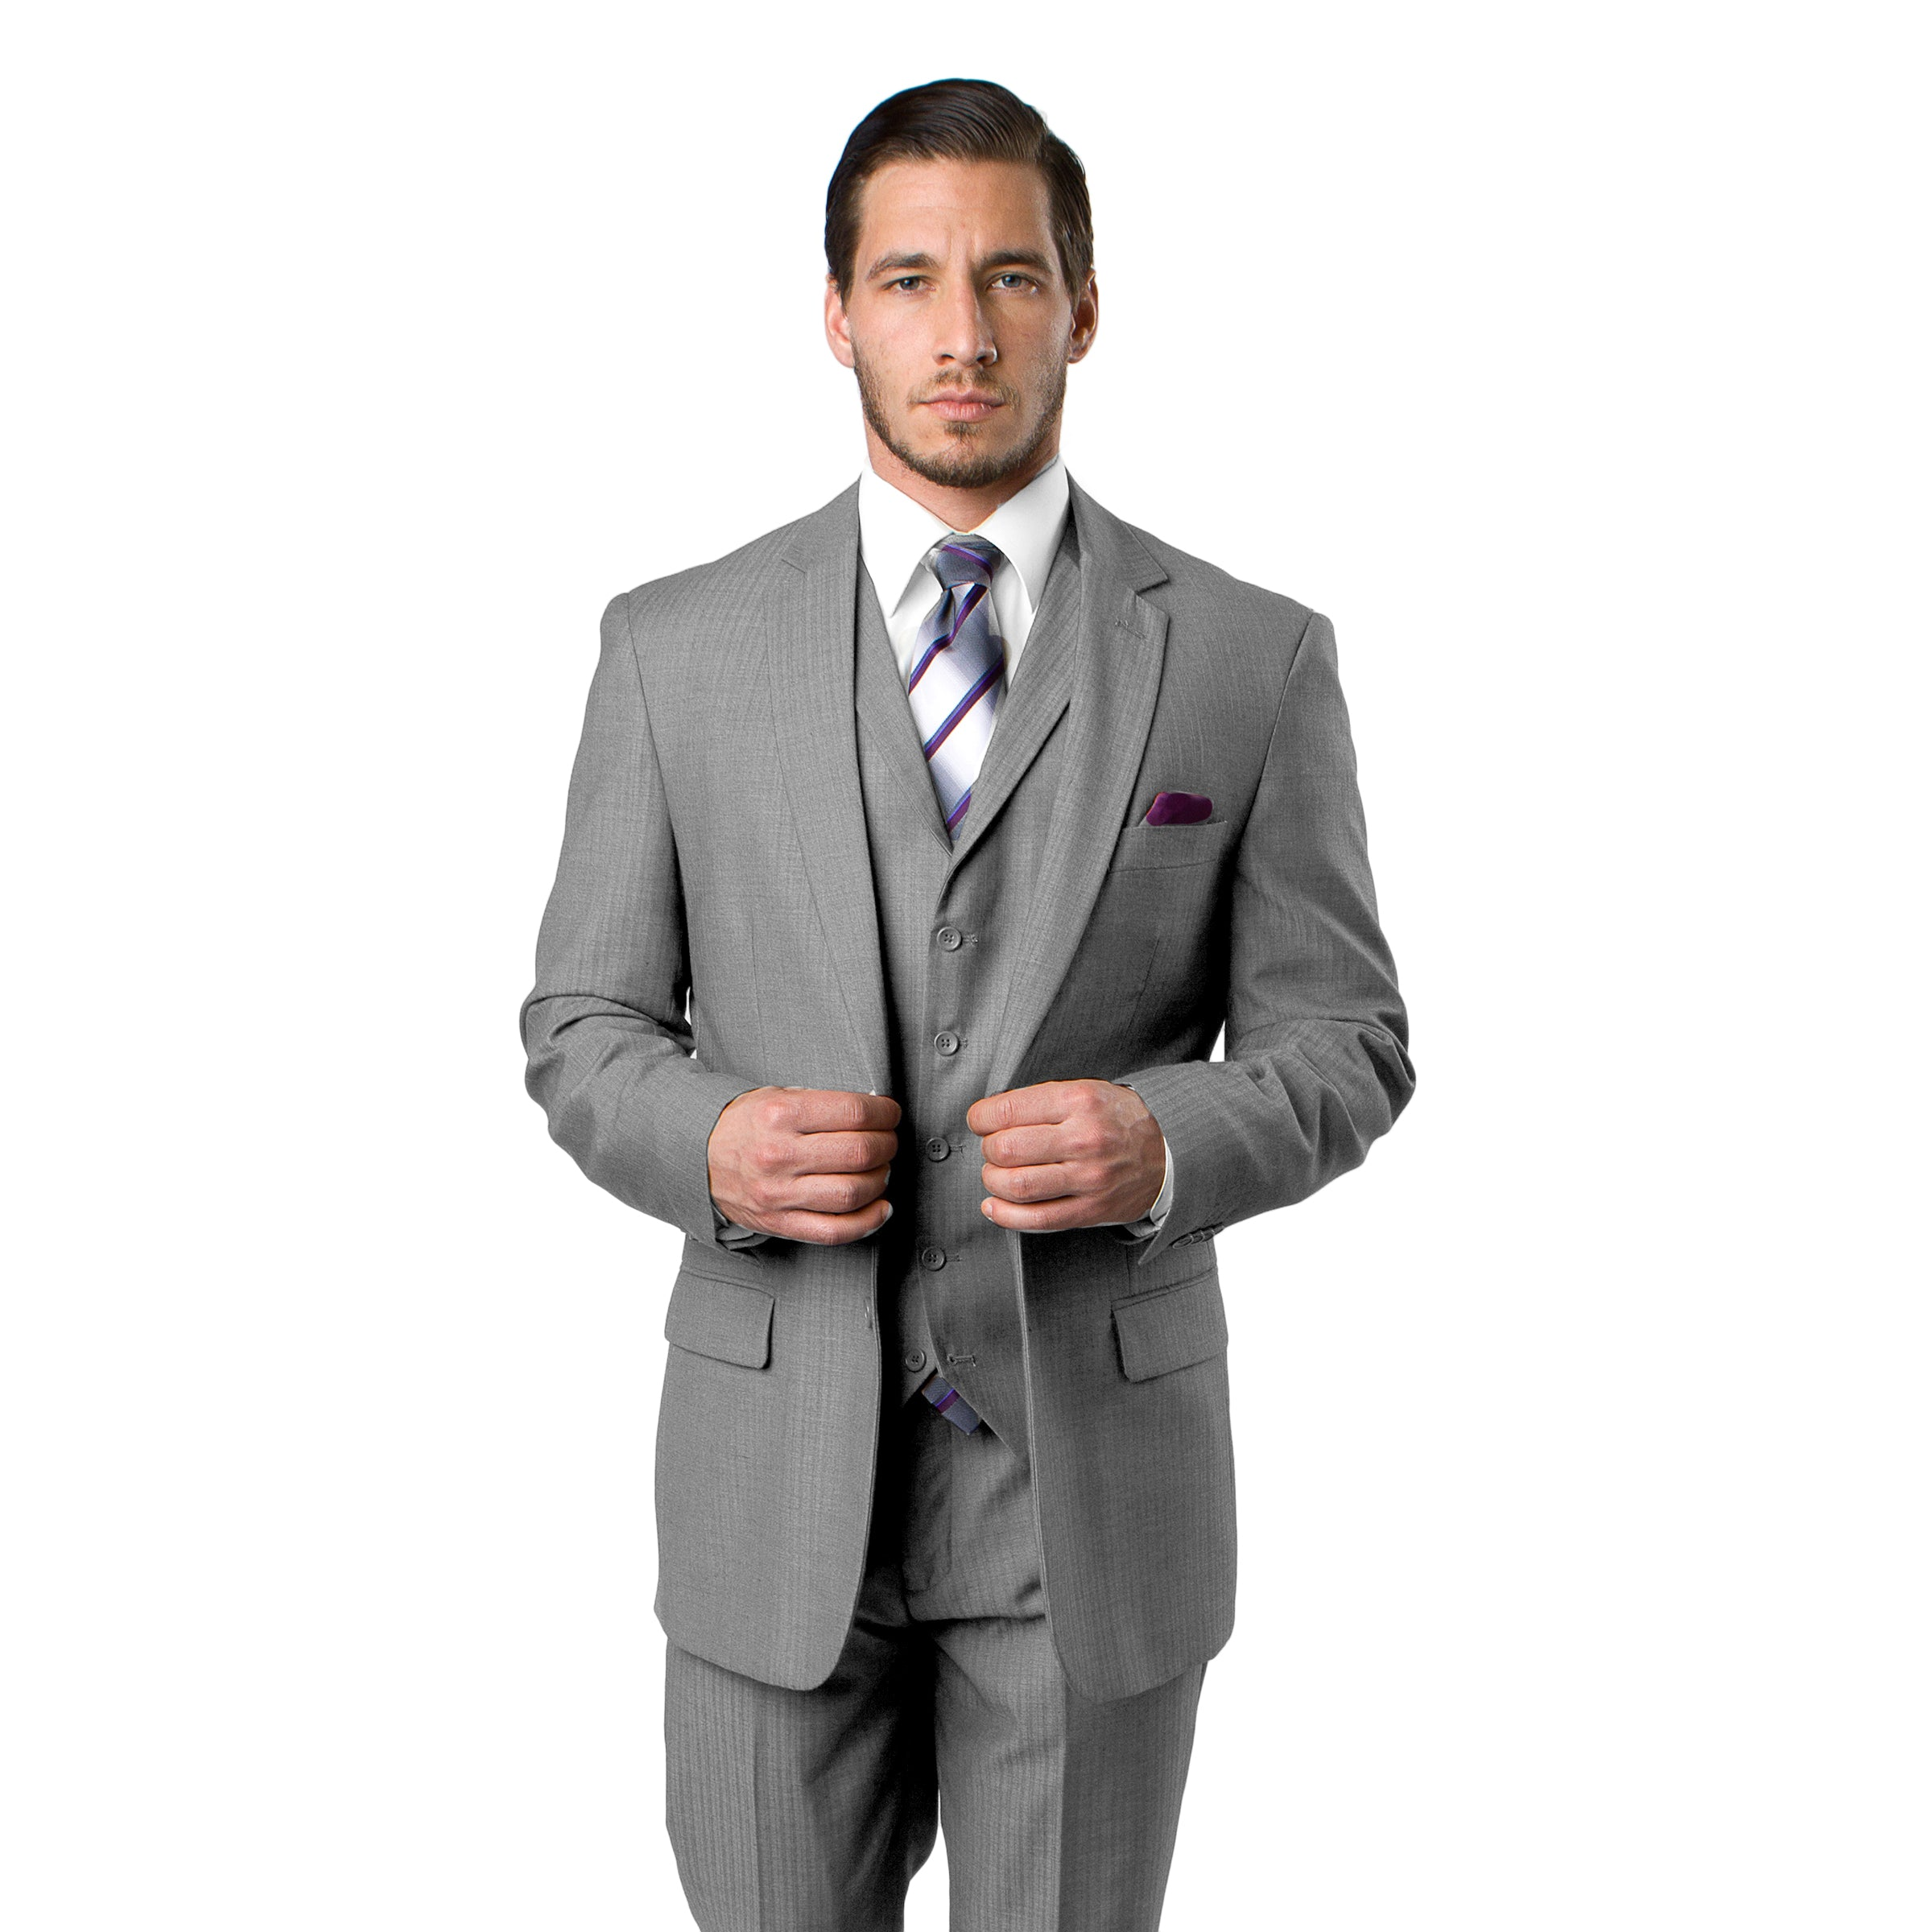 Grey Suit For Men Formal Suits For All Ocassions M230-03